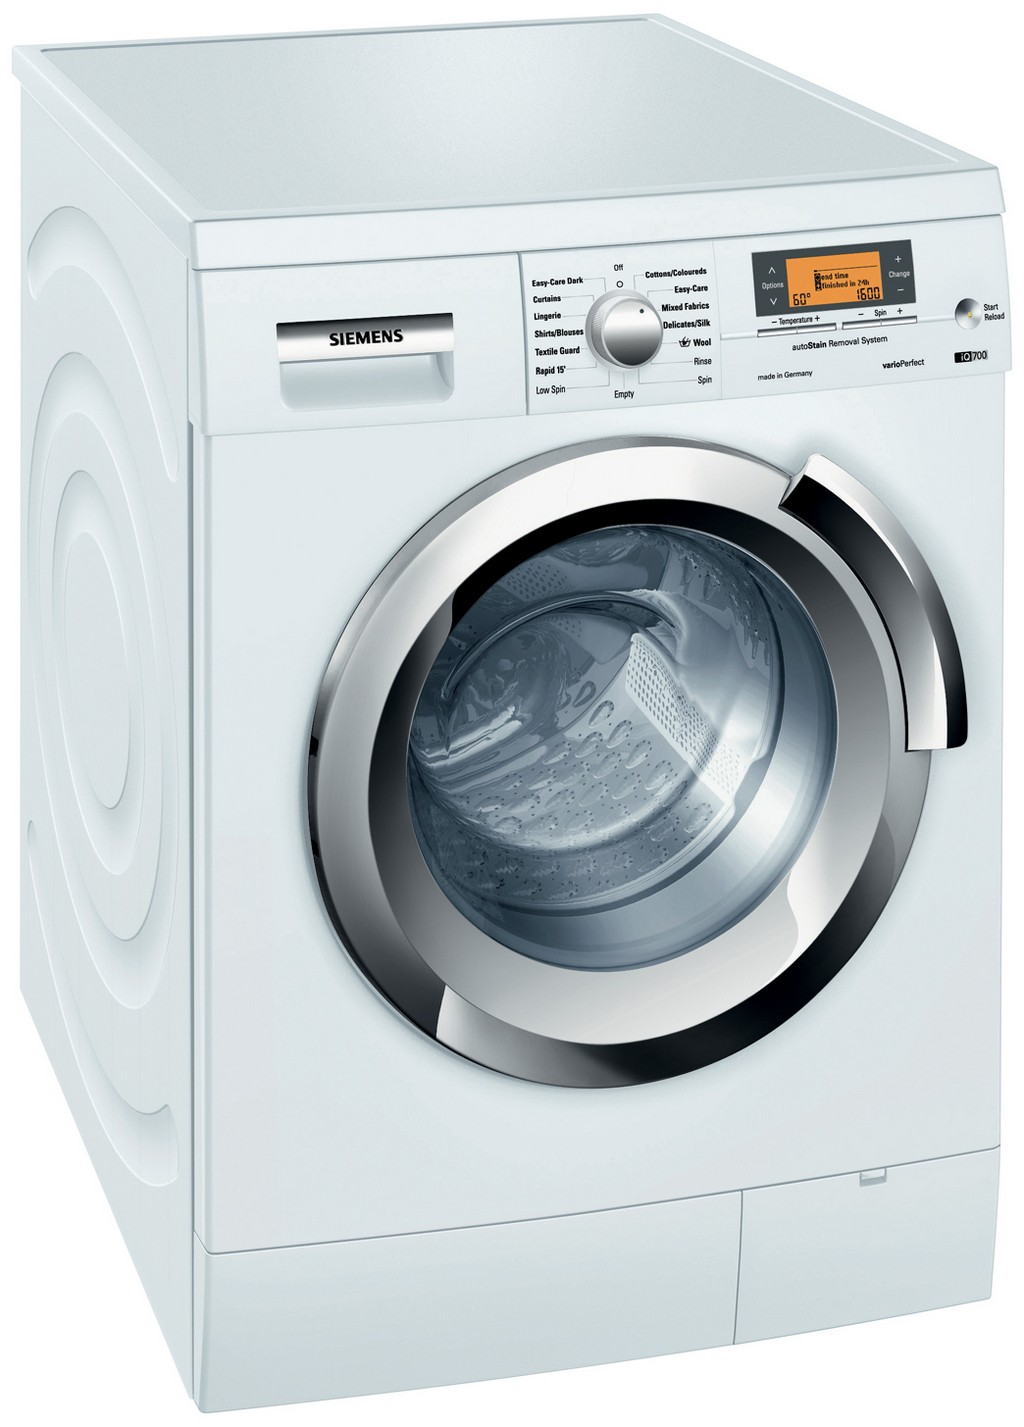 washing machine reviews, whirlpool cabrio washing machine, mini clothes washer